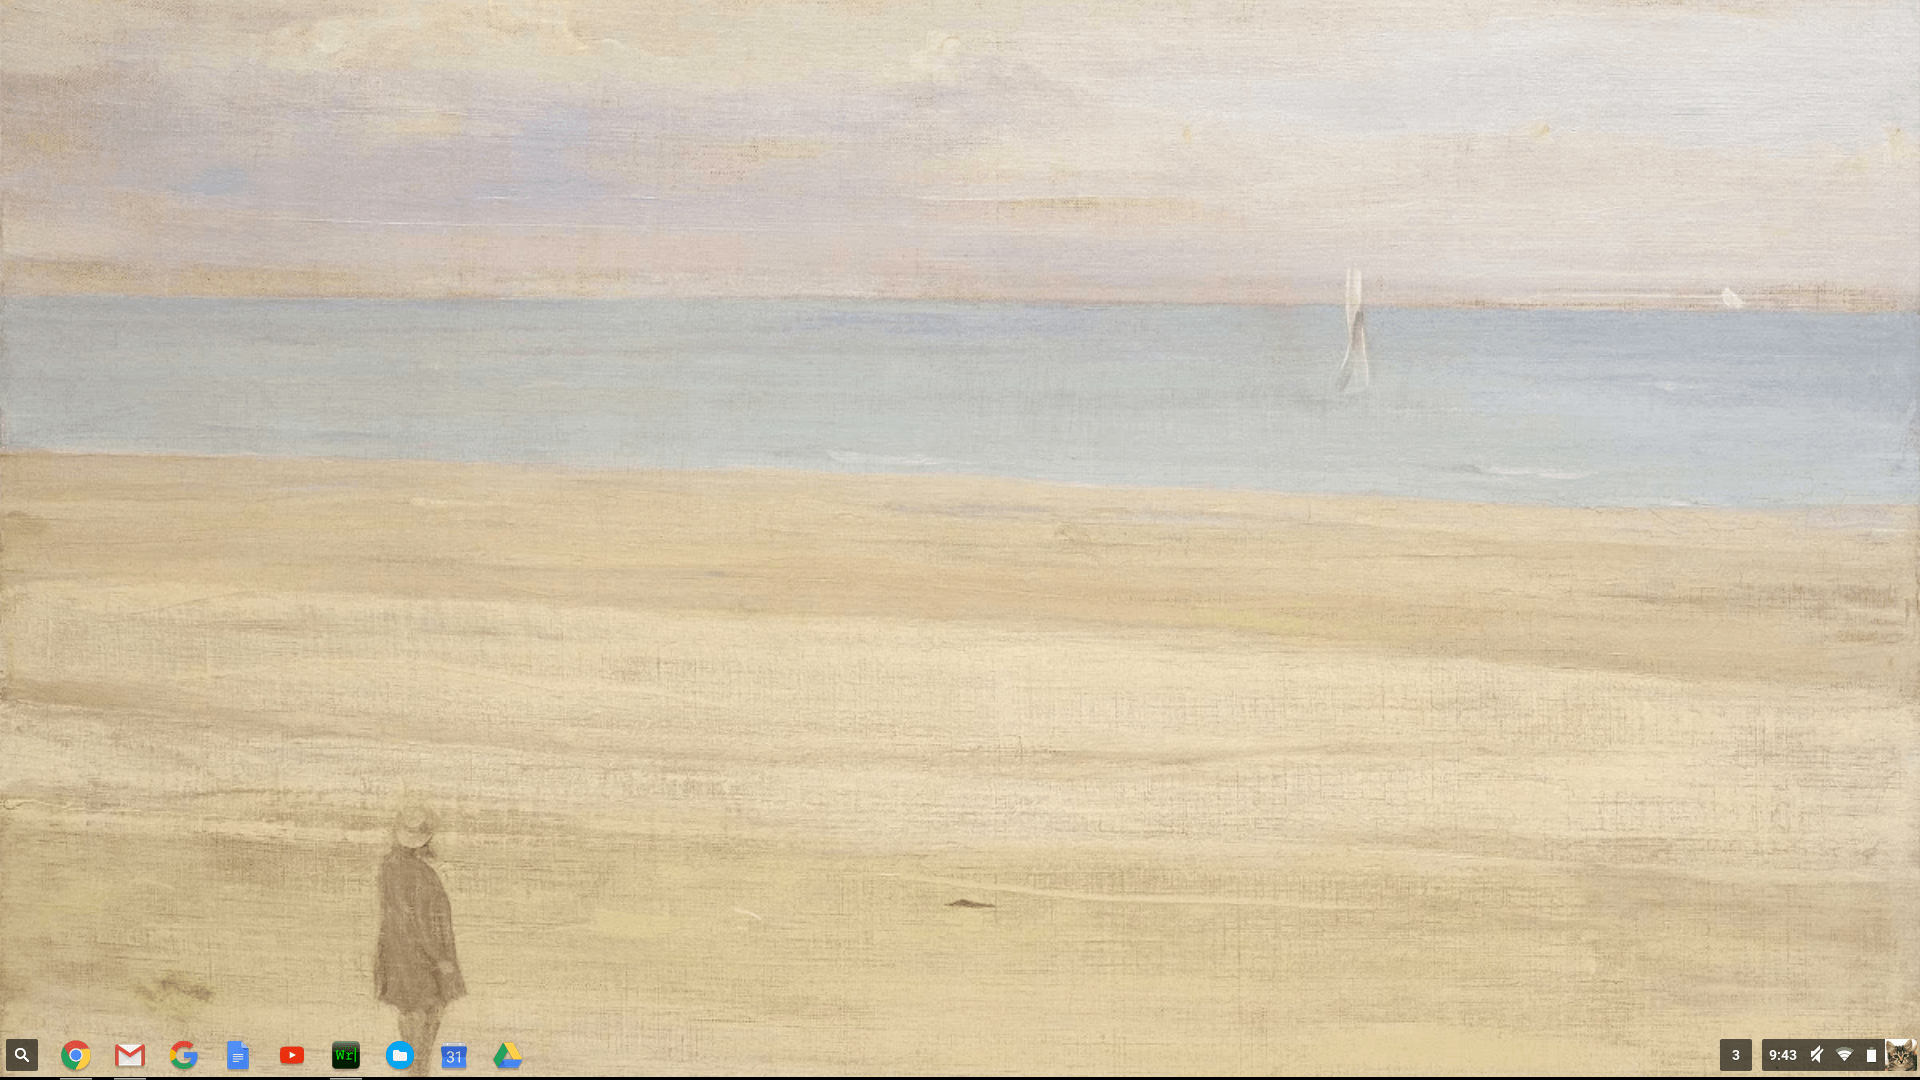 Wallpaper on a Chromebook with the new Google Wallpaper Art Chrome app 1920x1080